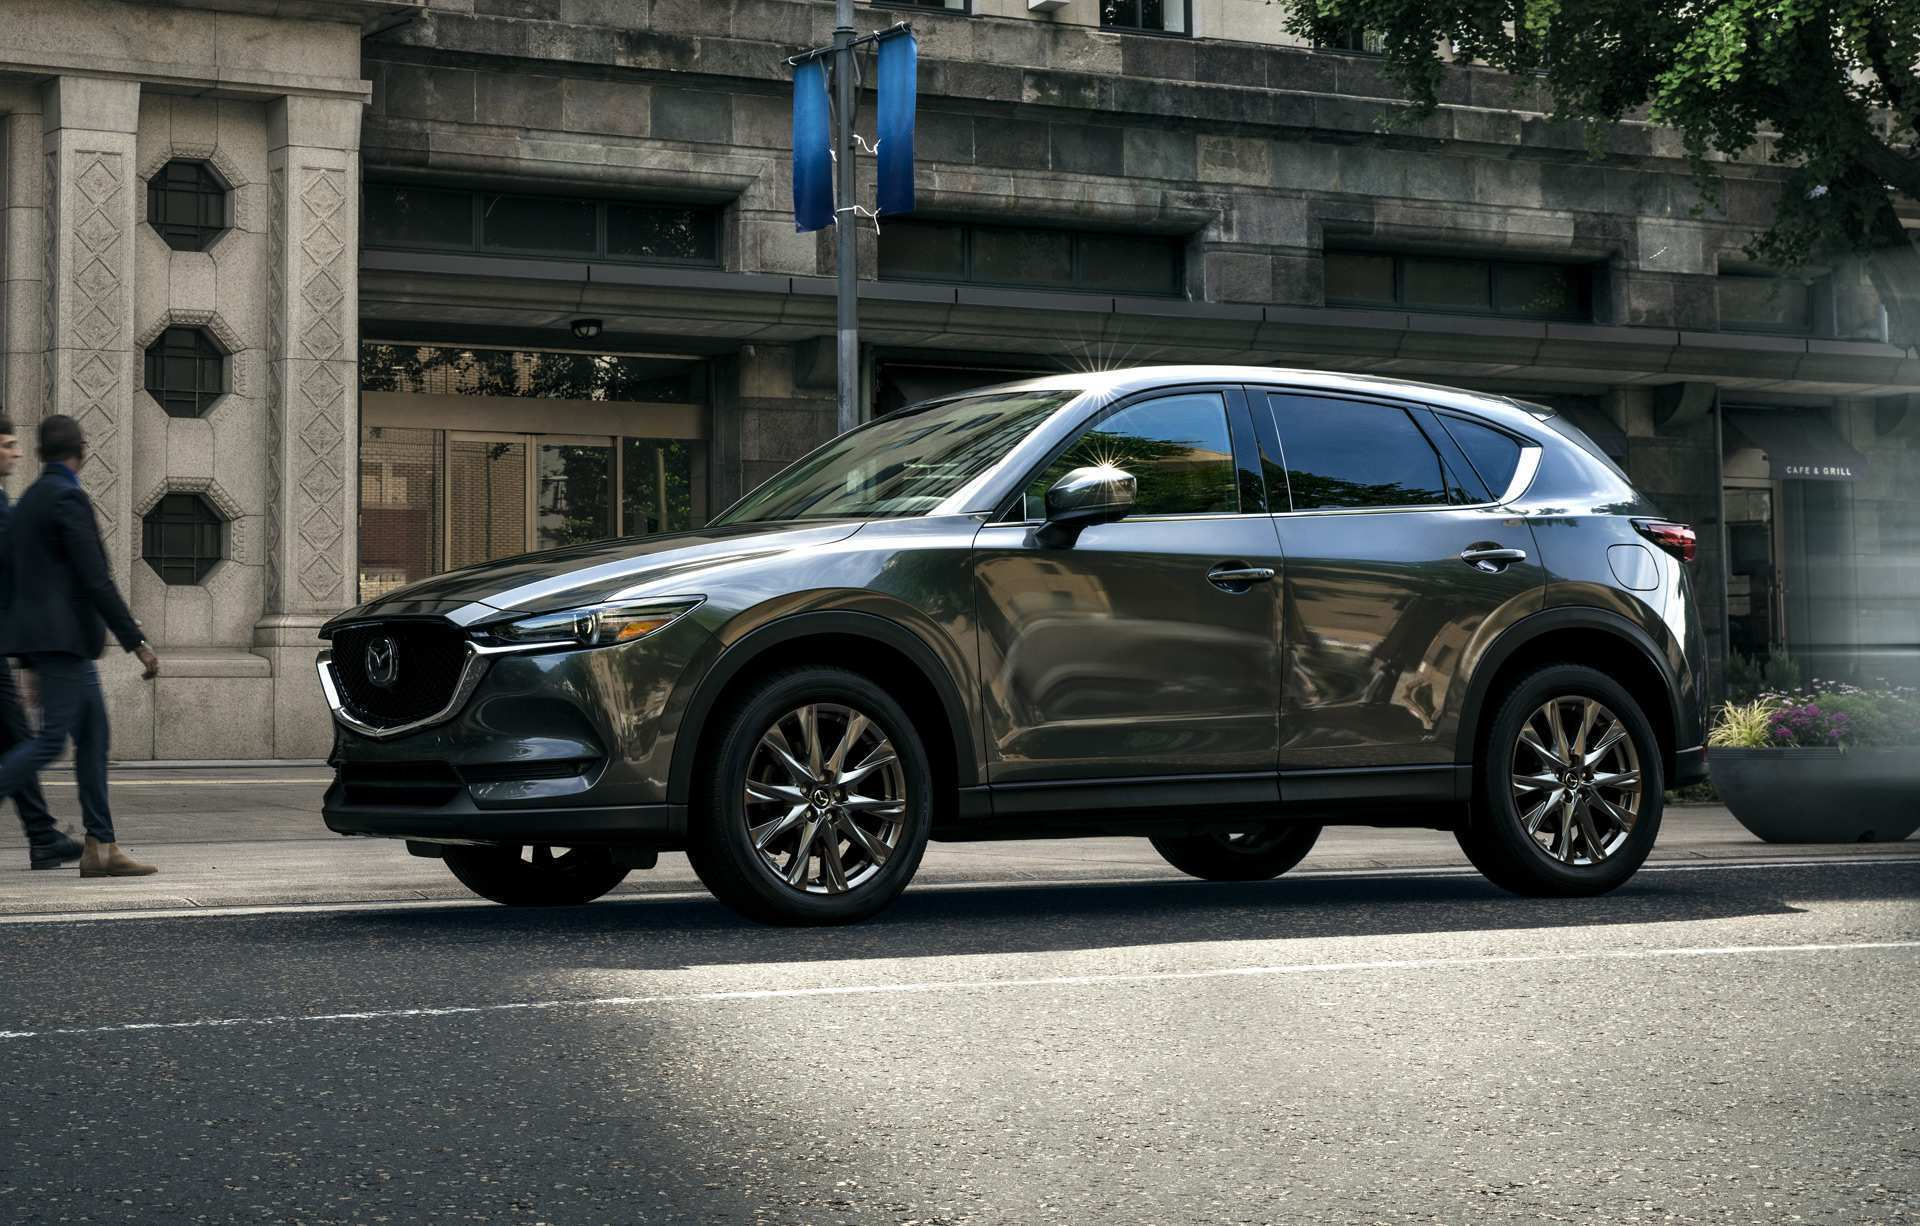 91 All New 2019 Mazda Cx 5 Price And Release Date